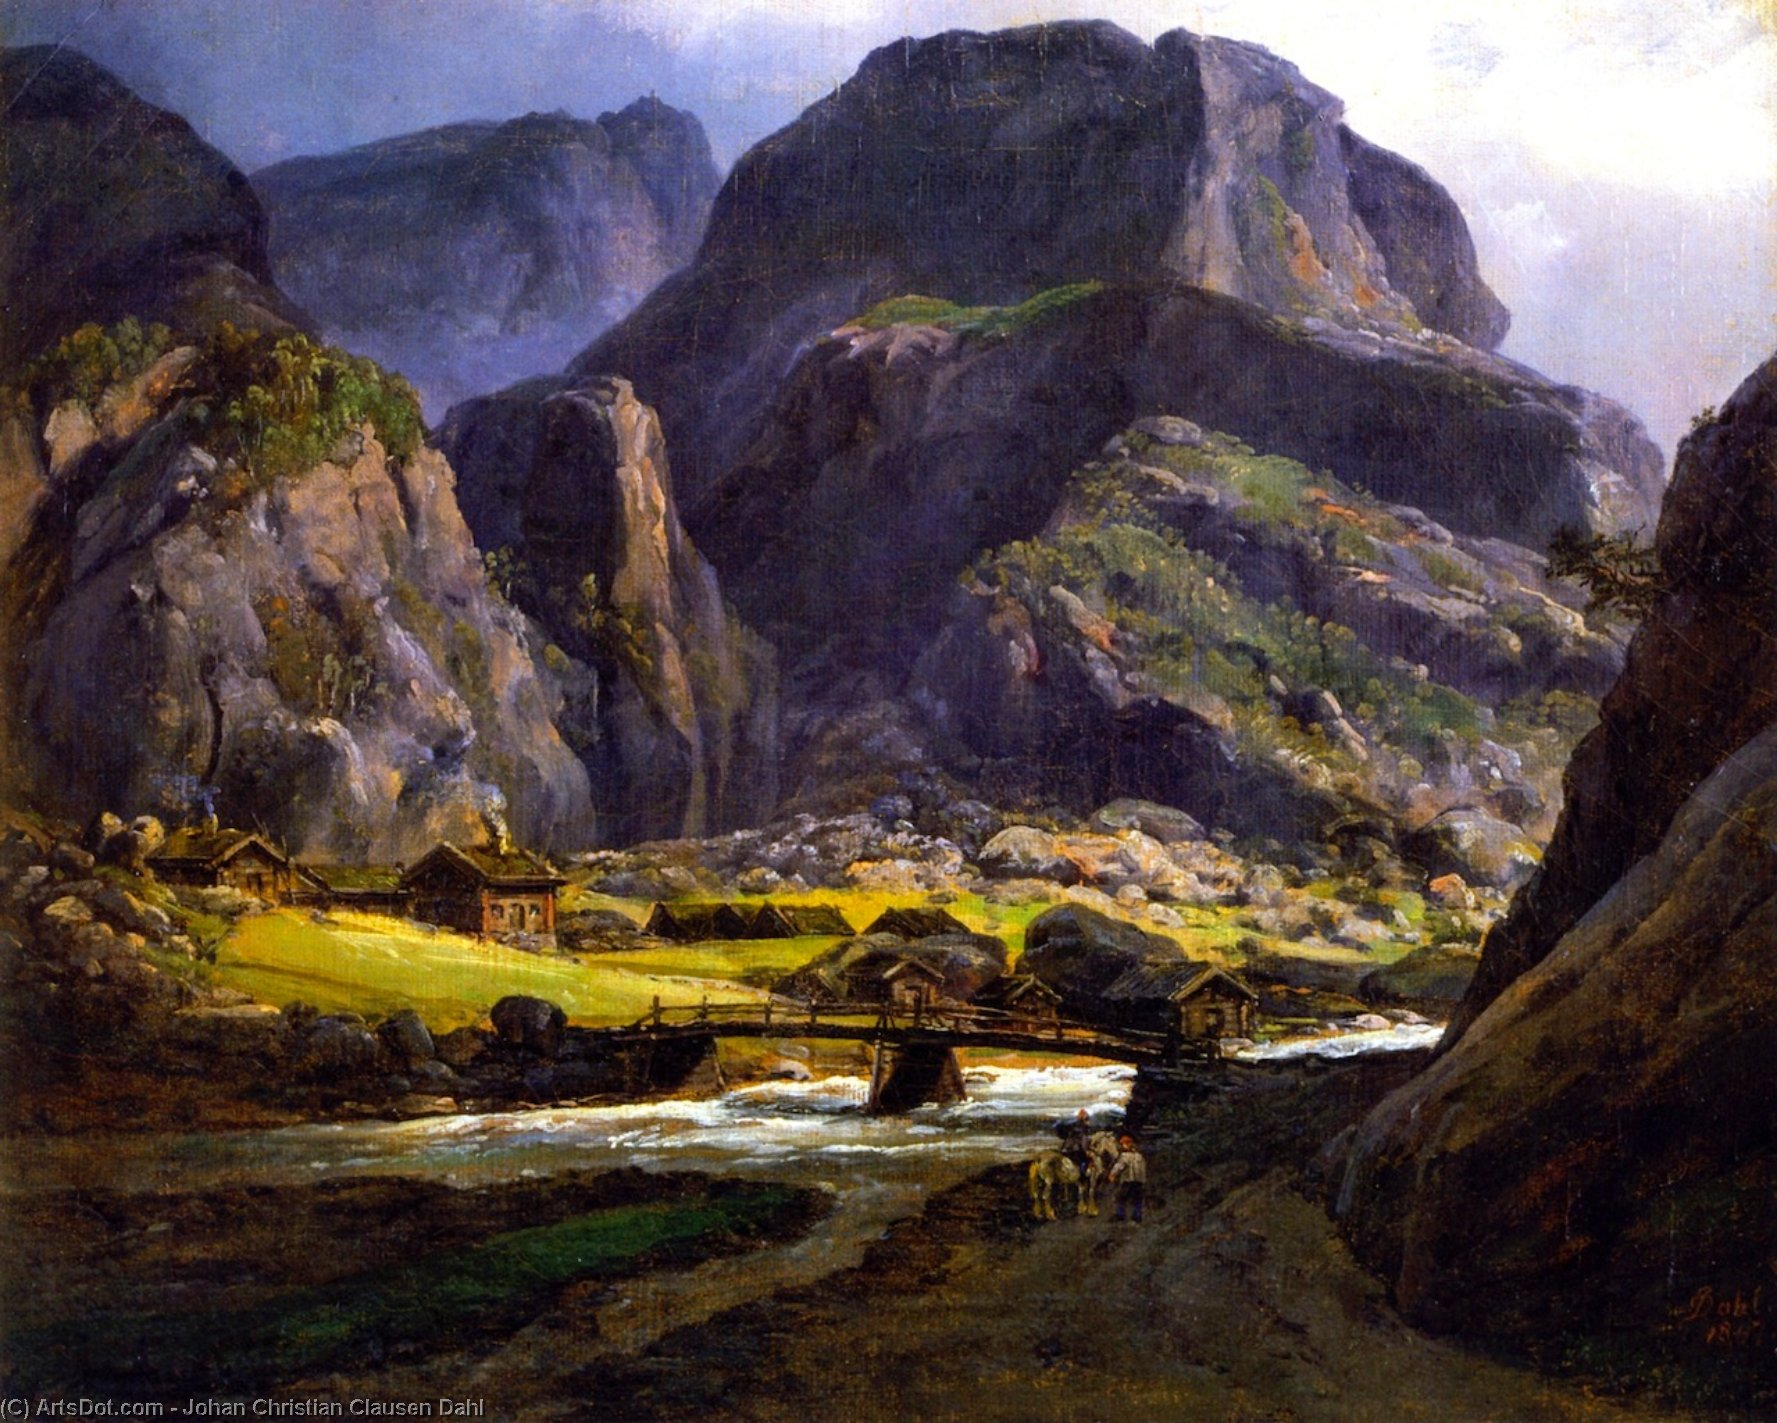 Вид Naerodalen, Масло на панели по Johan Christian Clausen Dahl (1788-1857, Norway)